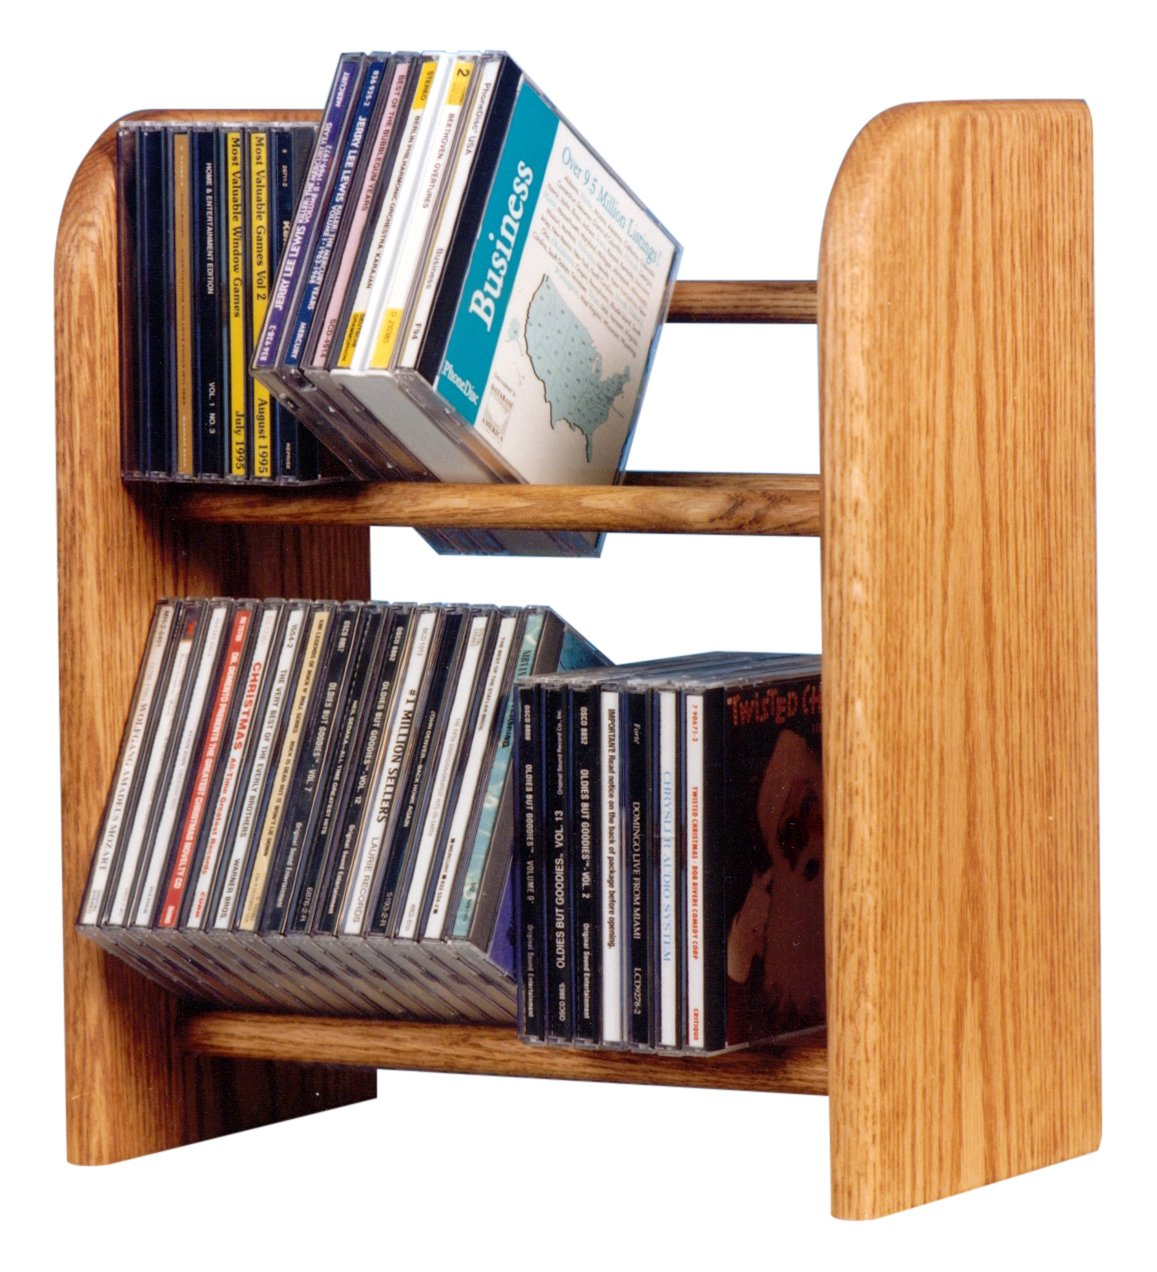 Wood Shed The 204 U Solid Oak CD Rack, Unfinished by Wood Shed